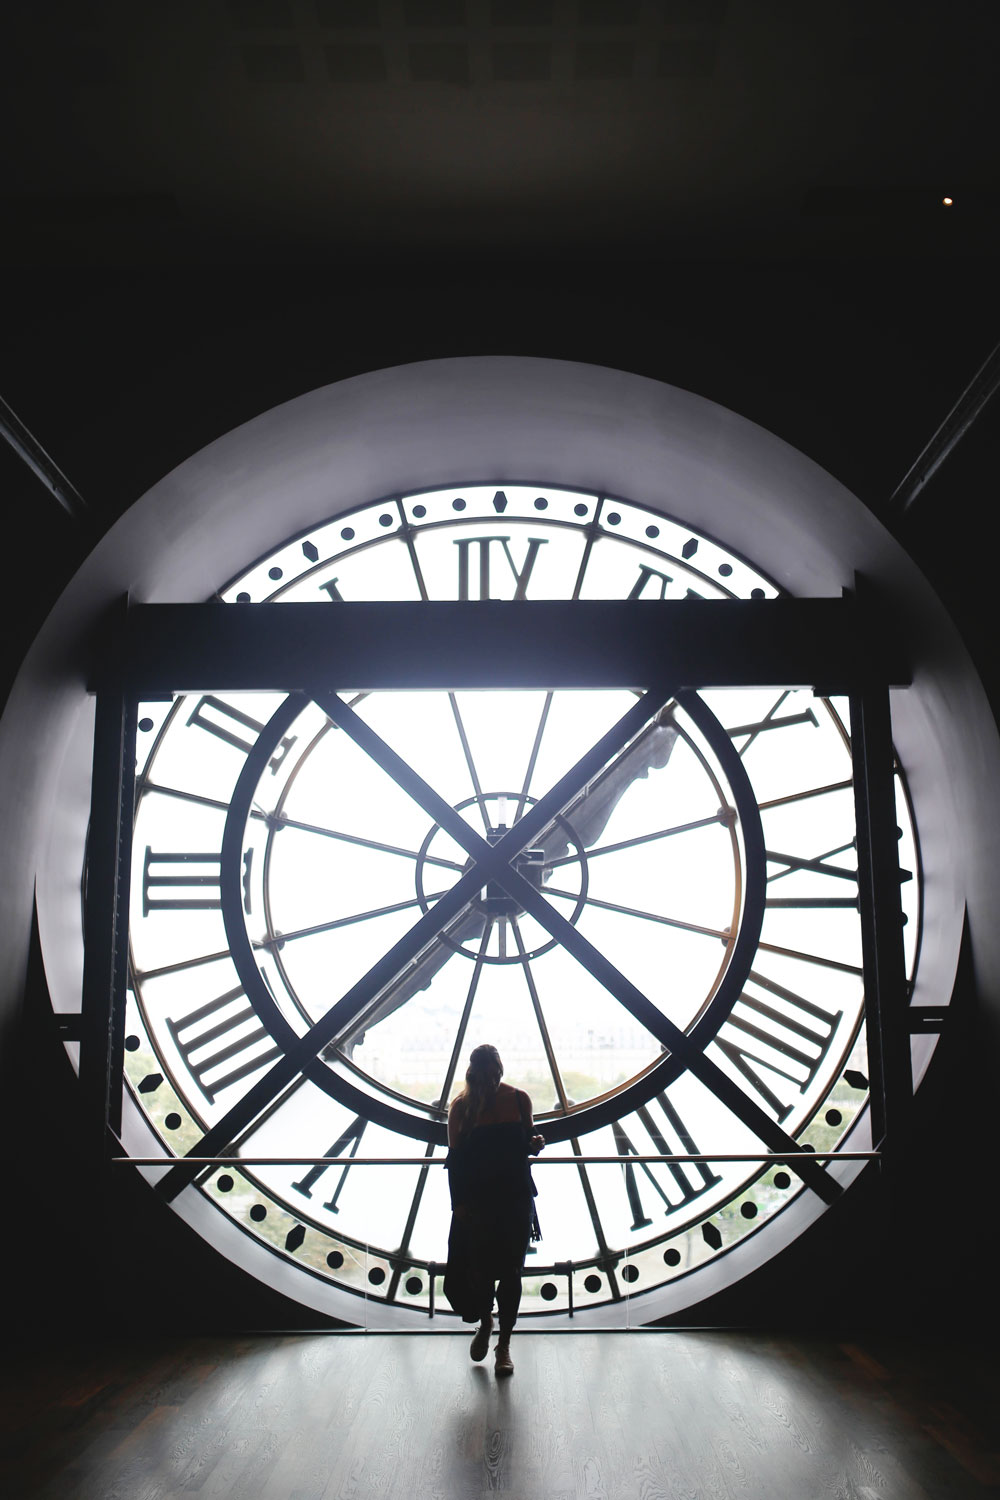 How to see musee dorsay clock paris by To Vogue or Bust